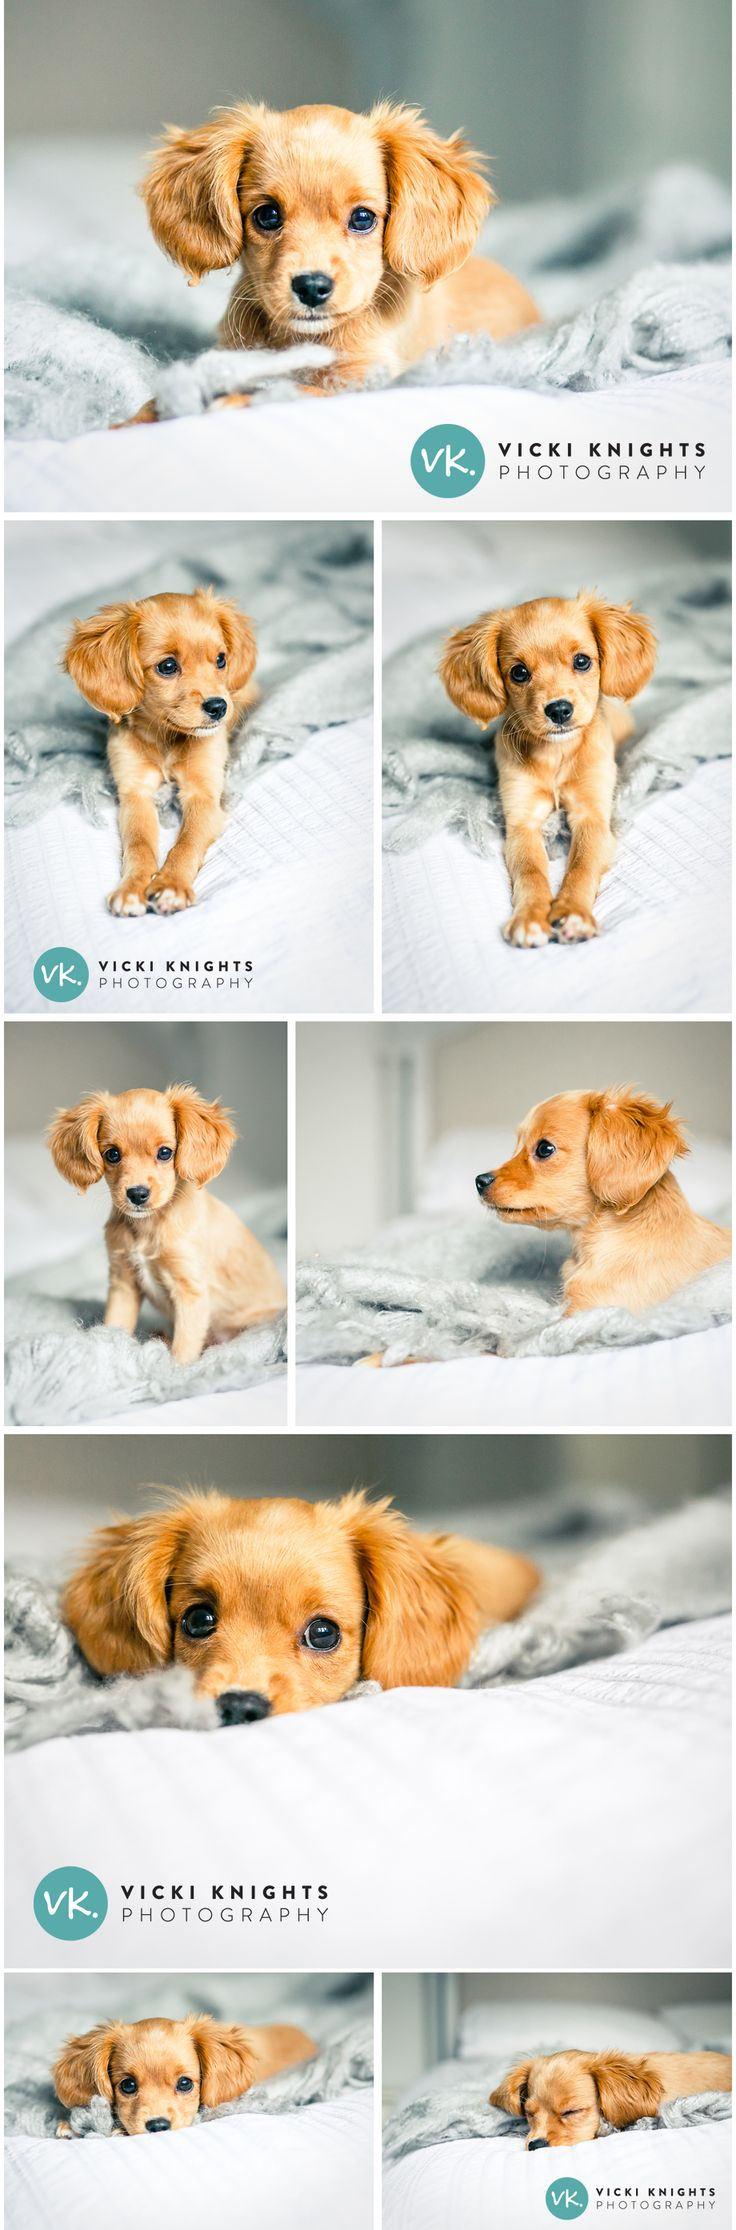 Smooth-coated Cavapoo/Cavoodle puppy | Vicki Knights Photography #puppyphotography #cavapoo #cavoodle